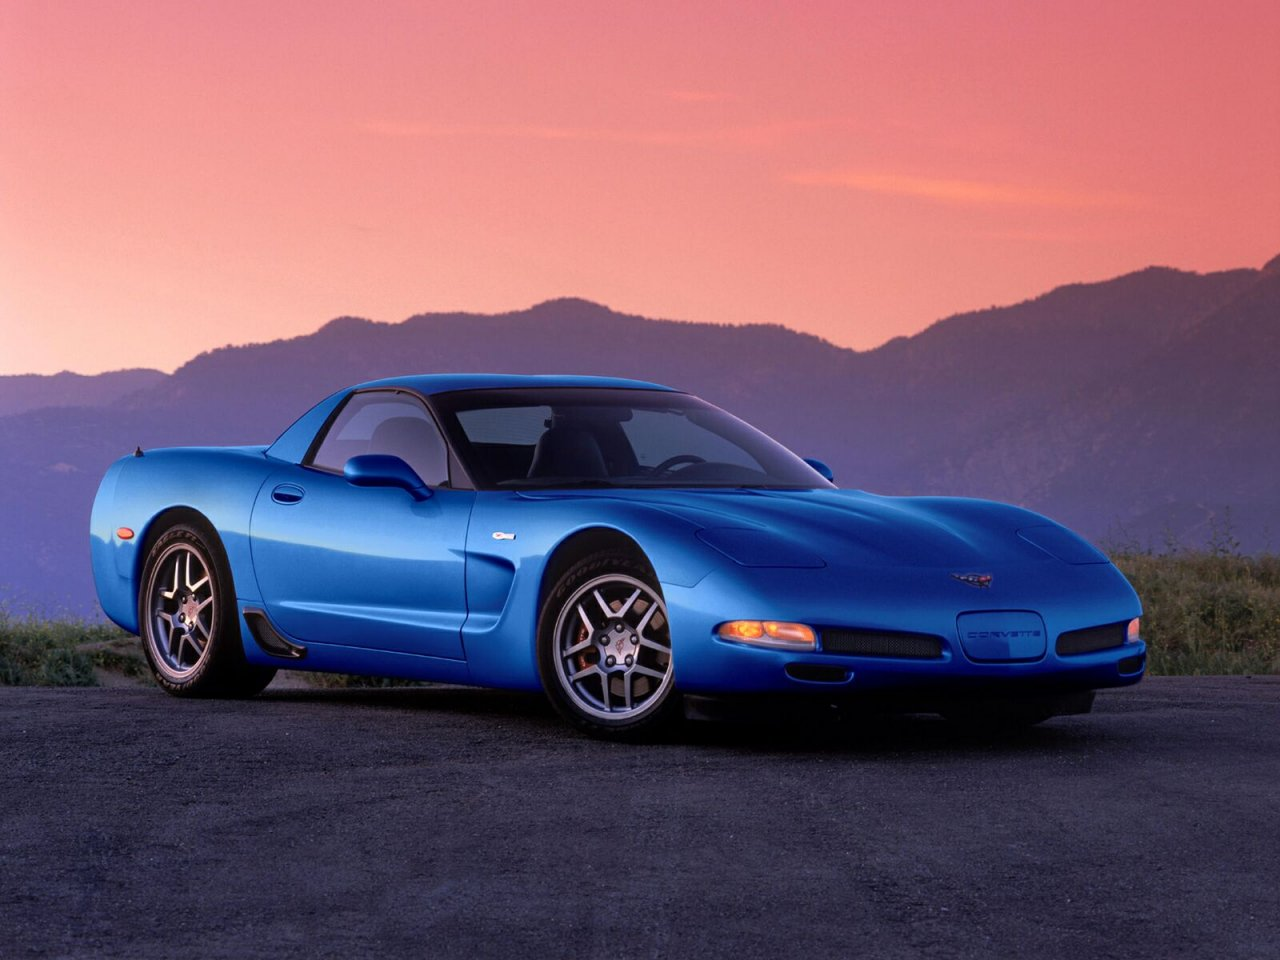 Pictures of chevrolet corvette c5 coupe 2001